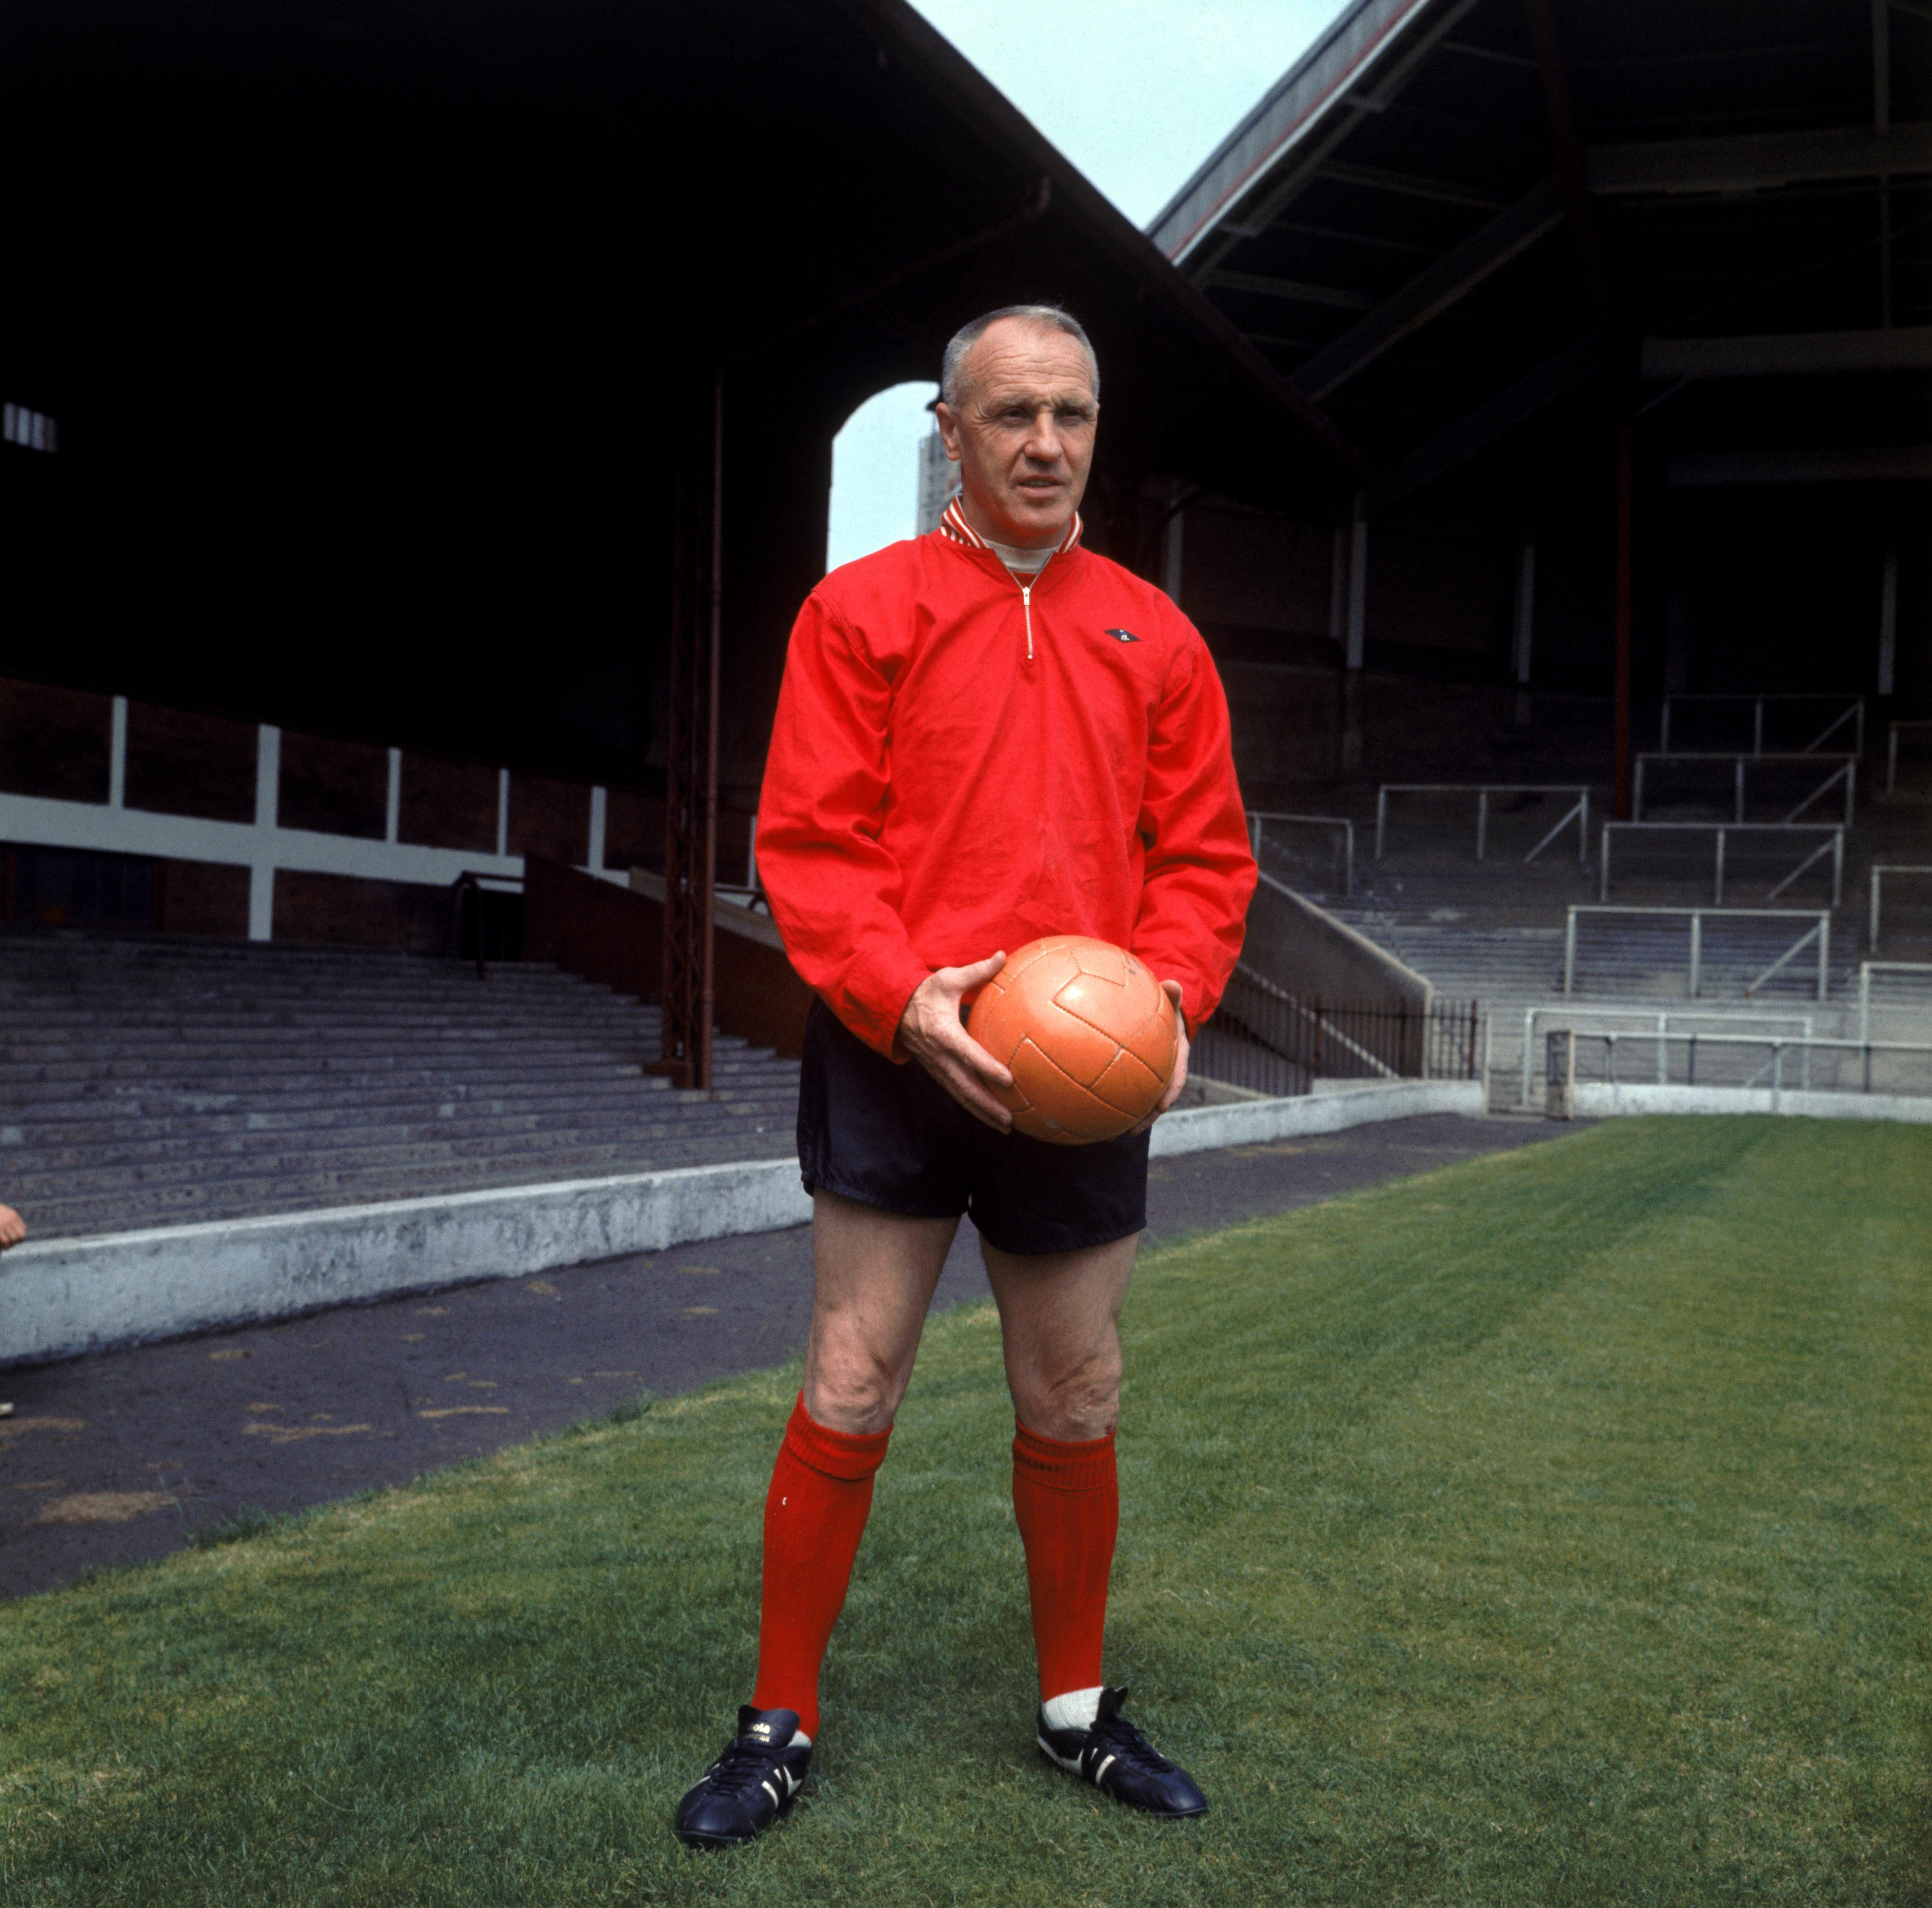 Bill Shankly at Anfield, 1969.